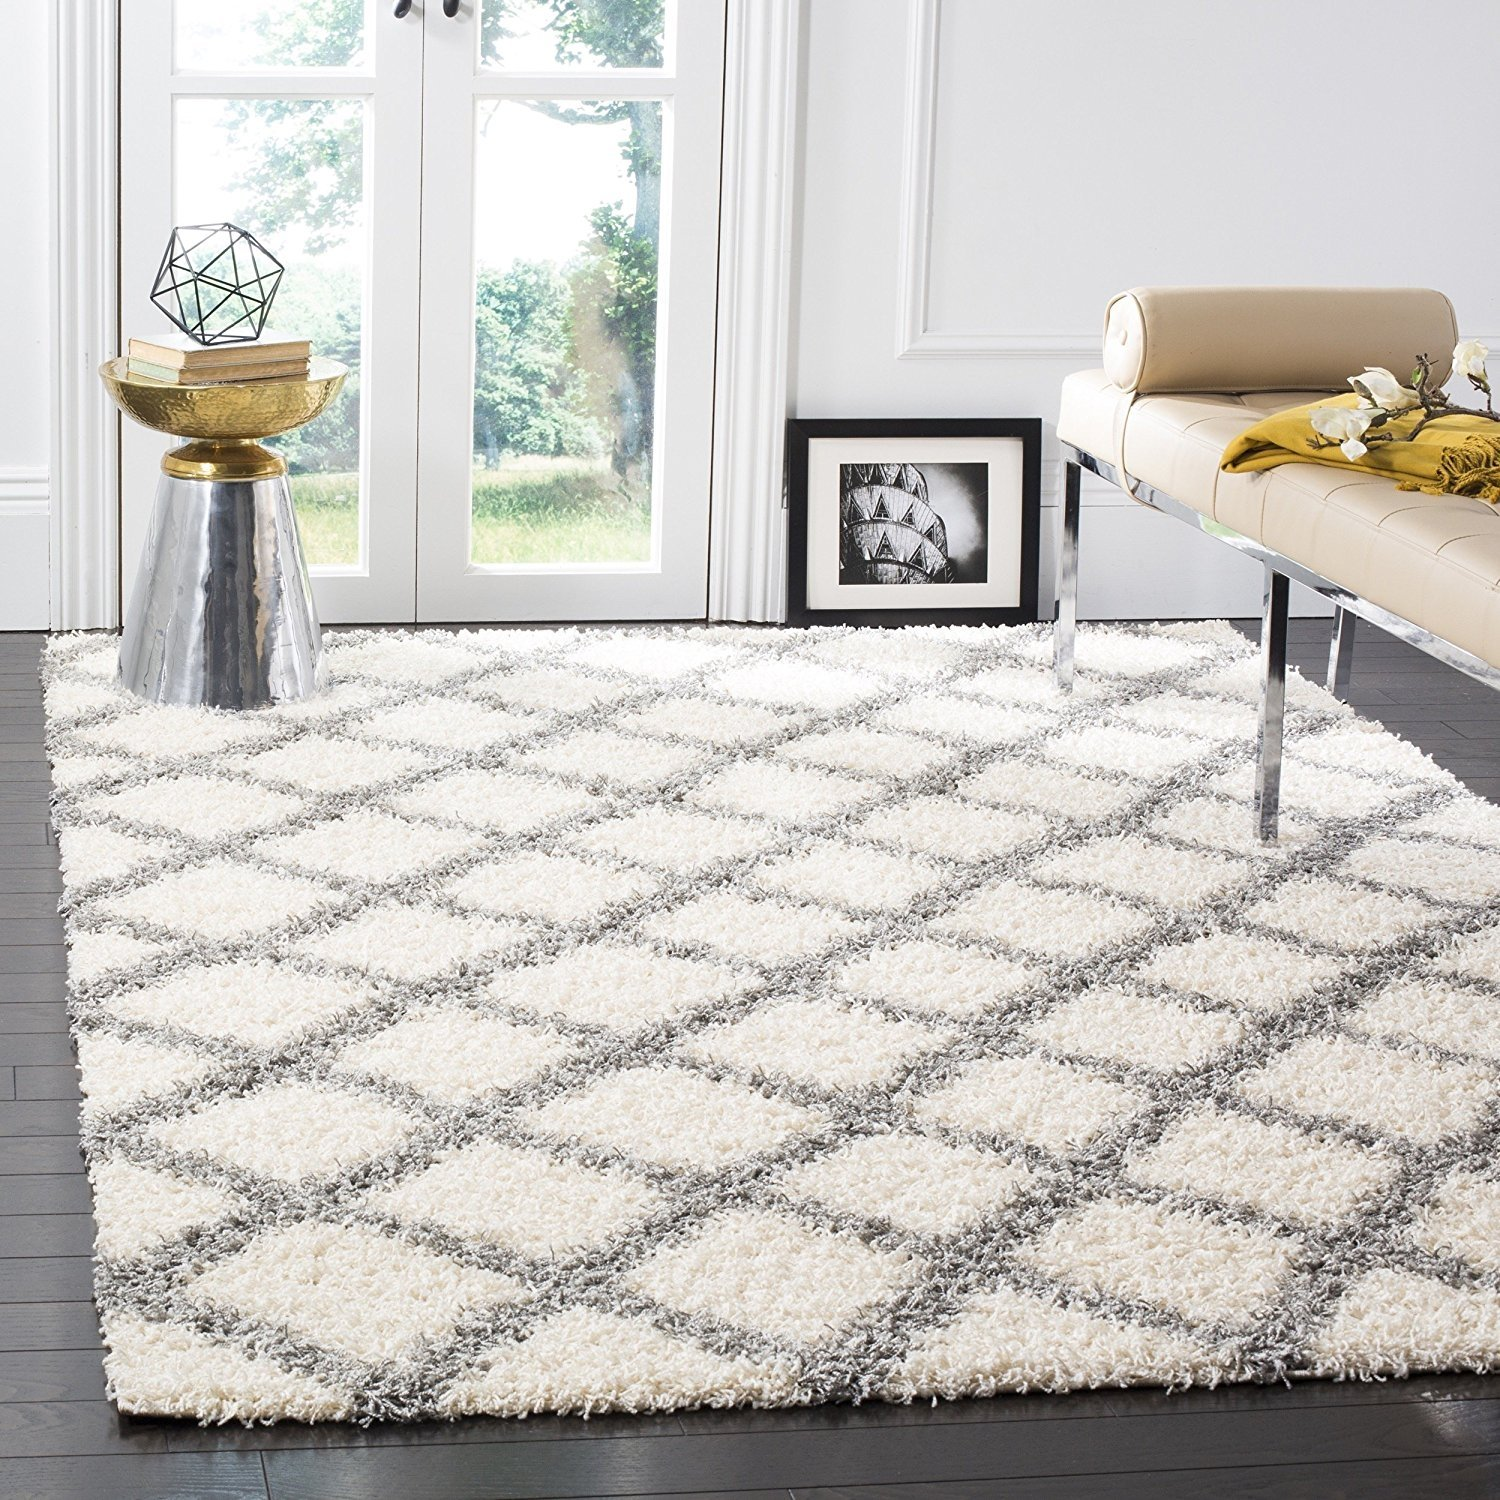 Sgd258f Ivory And Grey Area Rug